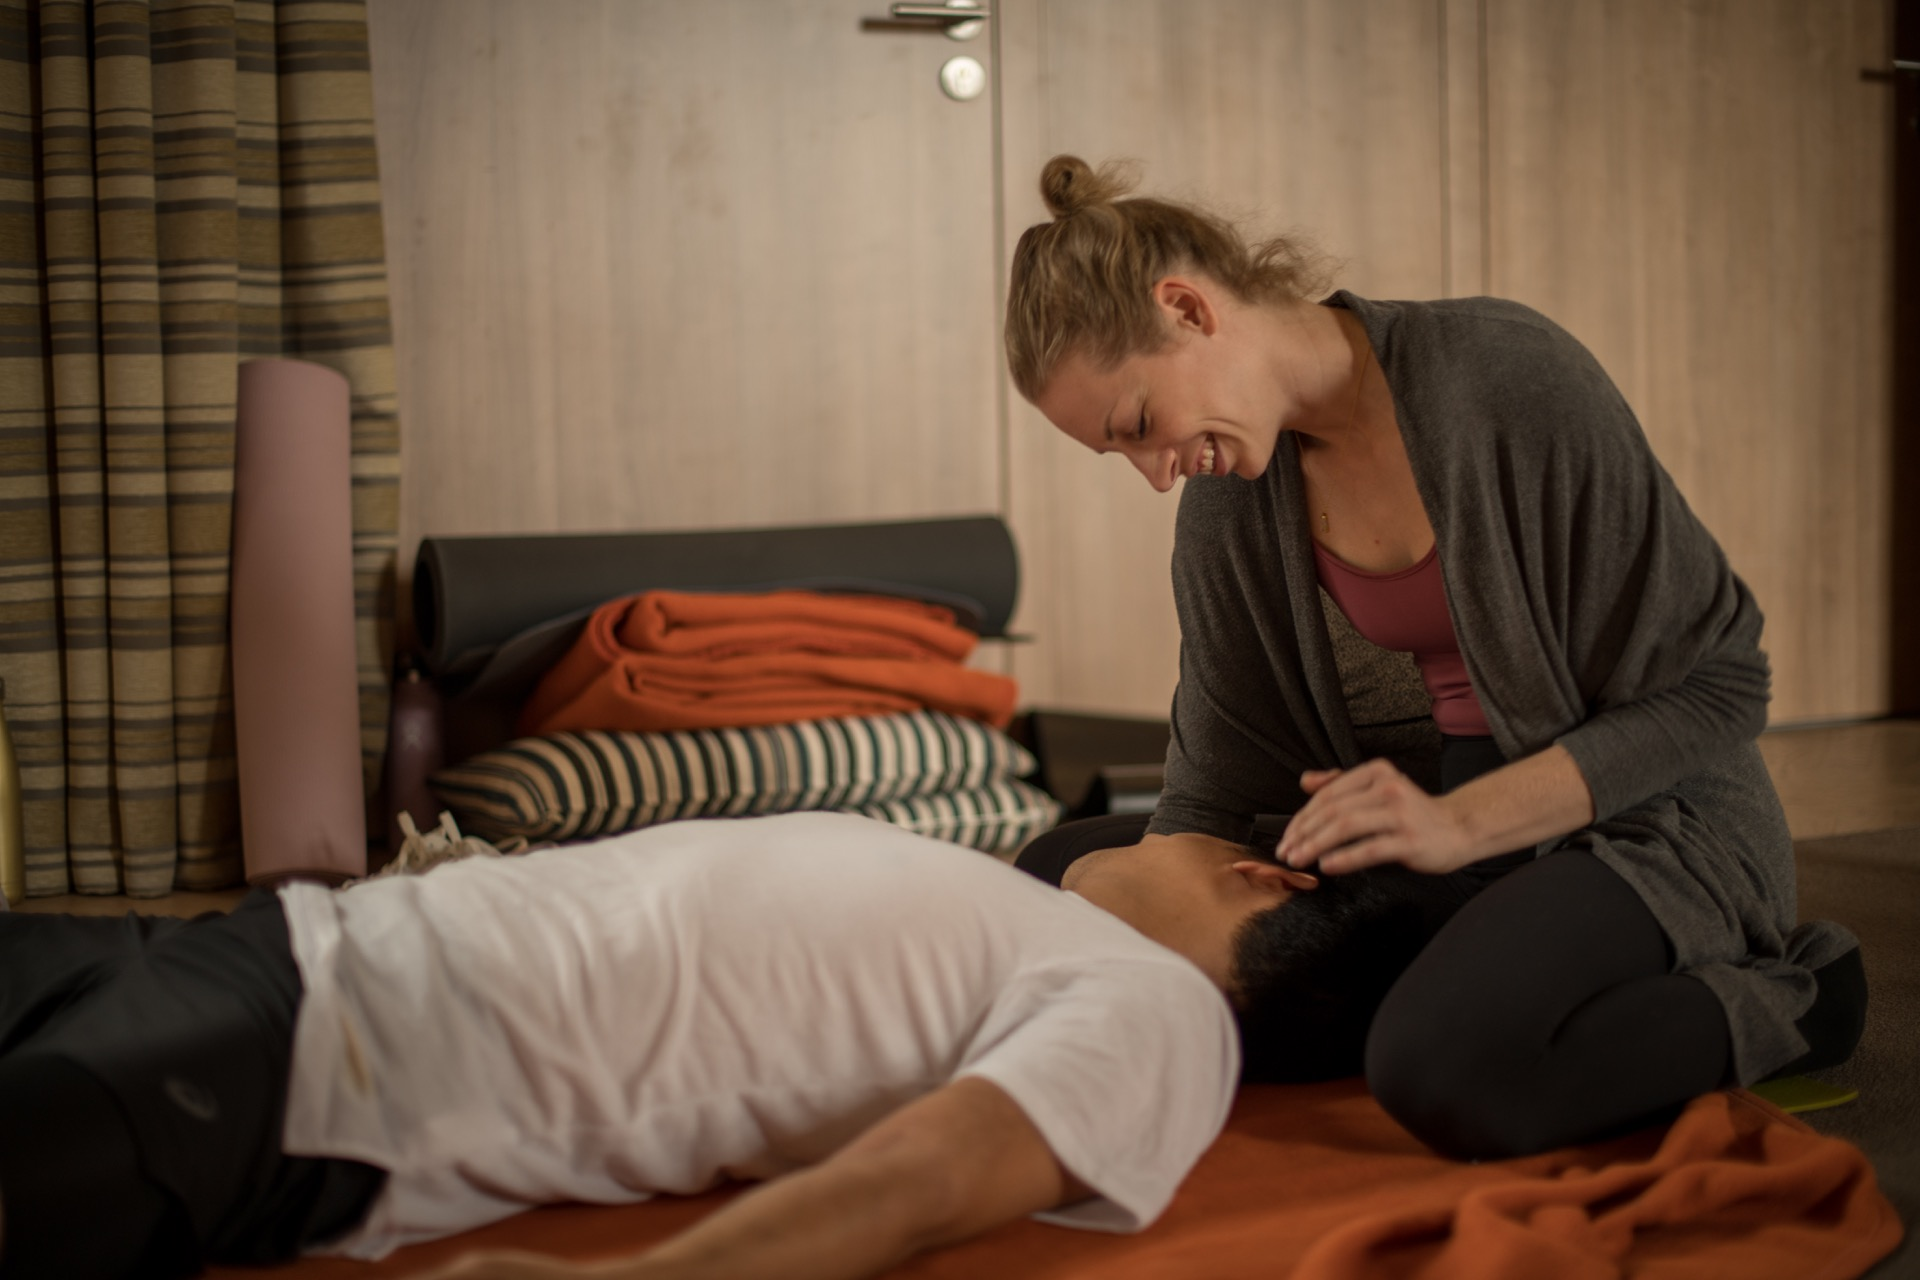 A-New-Beginning-Hie-Kim-Yoga-Retreat-Alina-Matis-Photography-091 - Hie Kim Yoga - Yoga Retreat - Yoga Workshops und Reisen